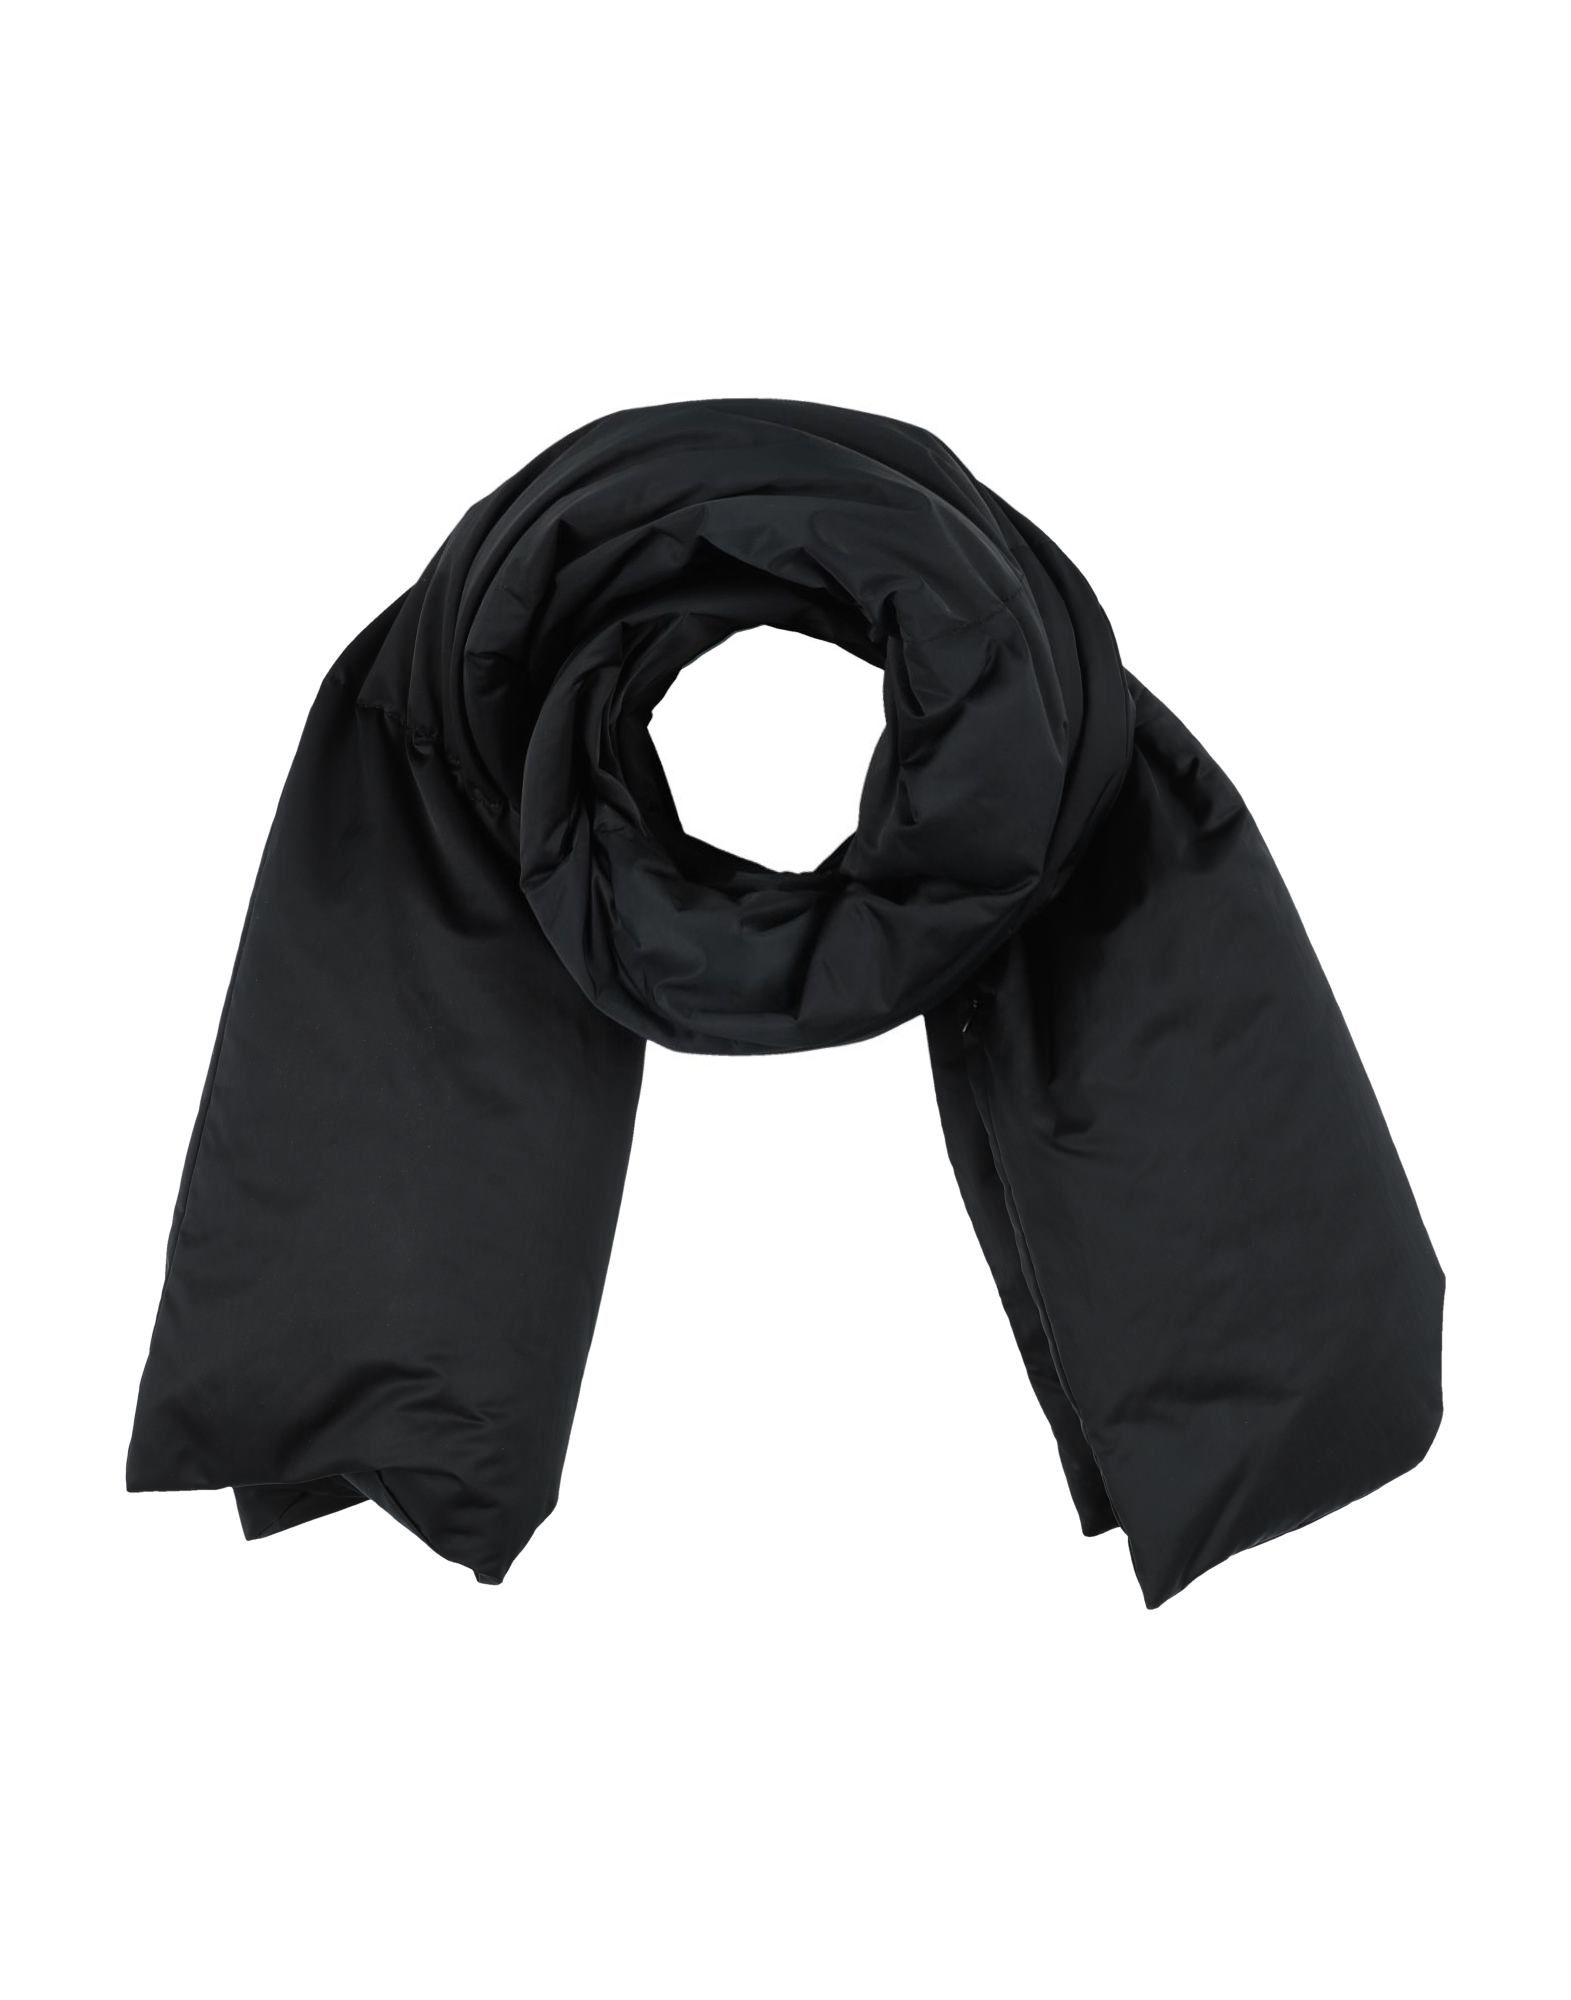 MM6 MAISON MARGIELA Stoles. techno fabric, laces, basic solid color, duck down filling, contains non-textile parts of animal origin. 70% Polyester, 30% Polyamide